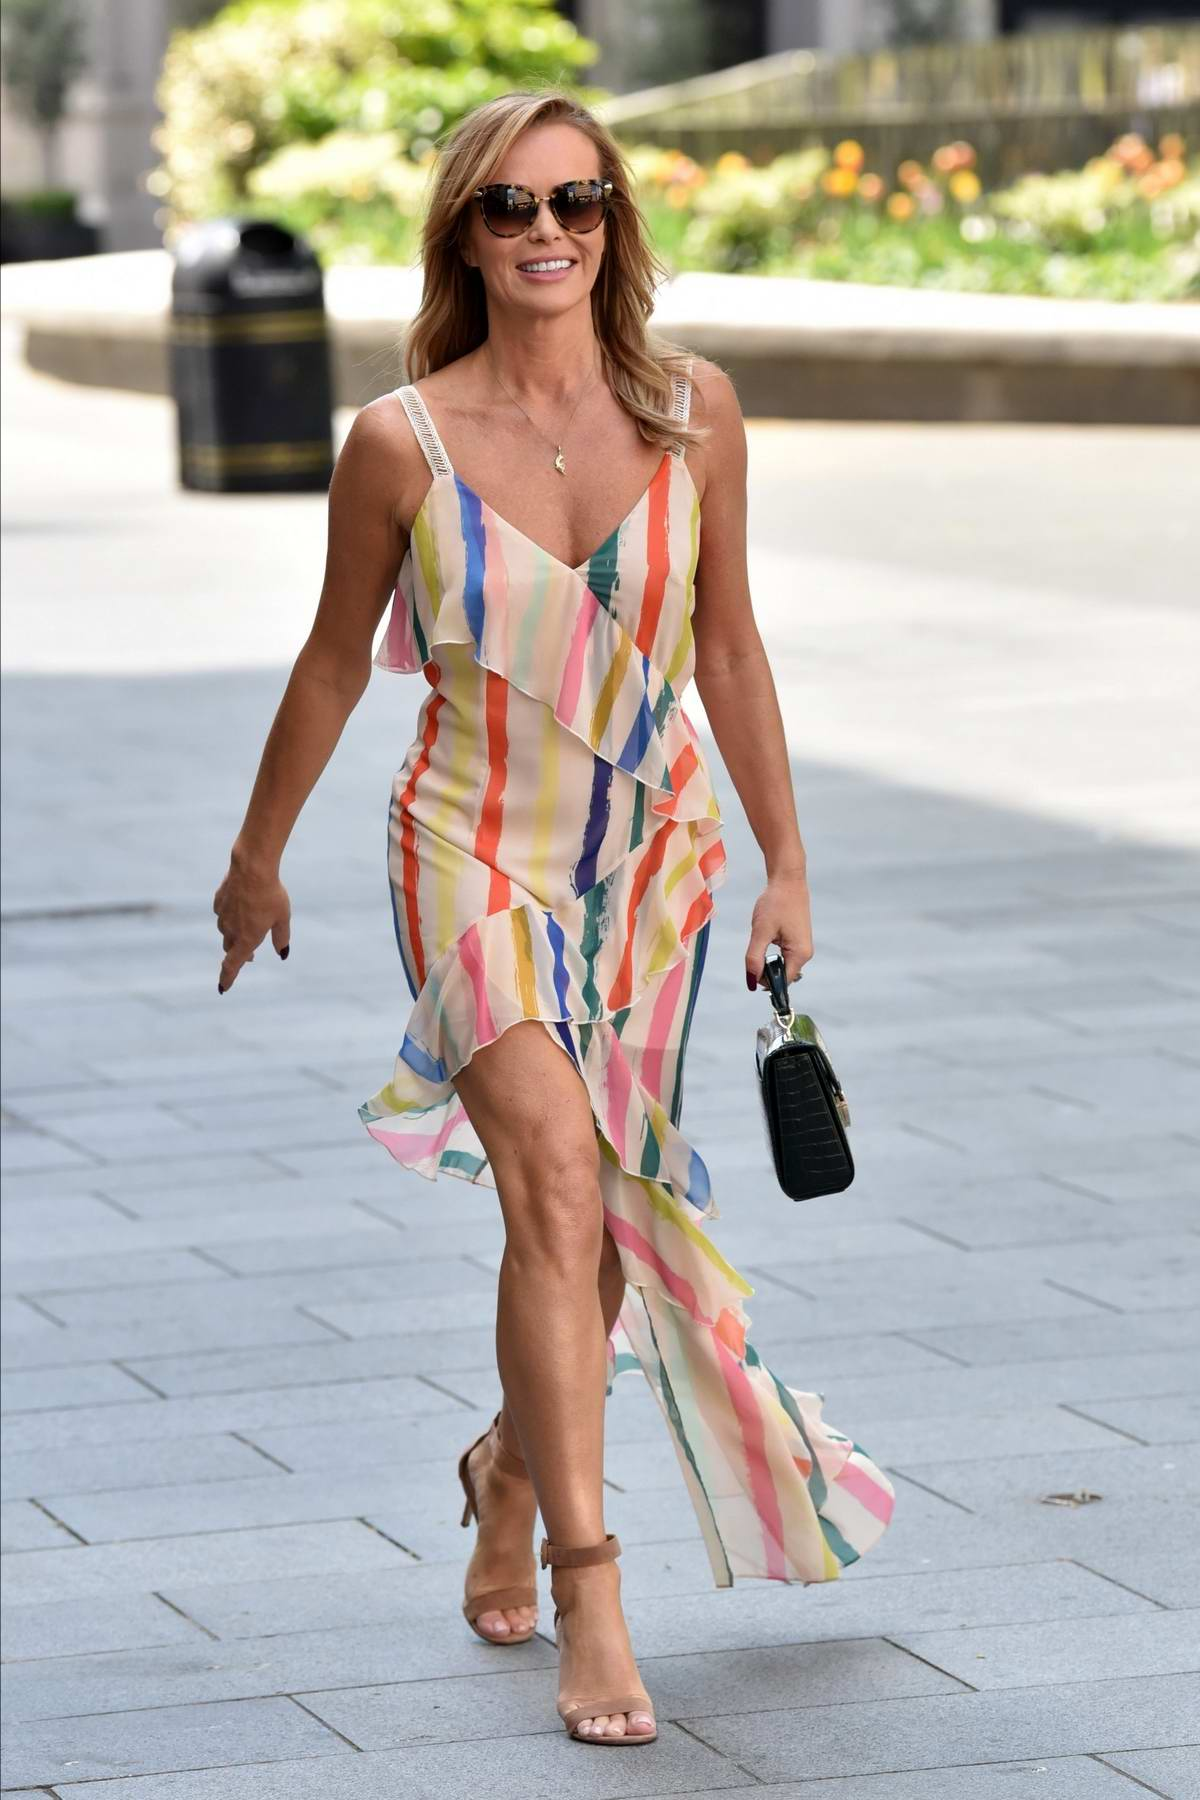 Amanda Holden looks great in colorful stripes while leaving the Heart Radio in London, UK